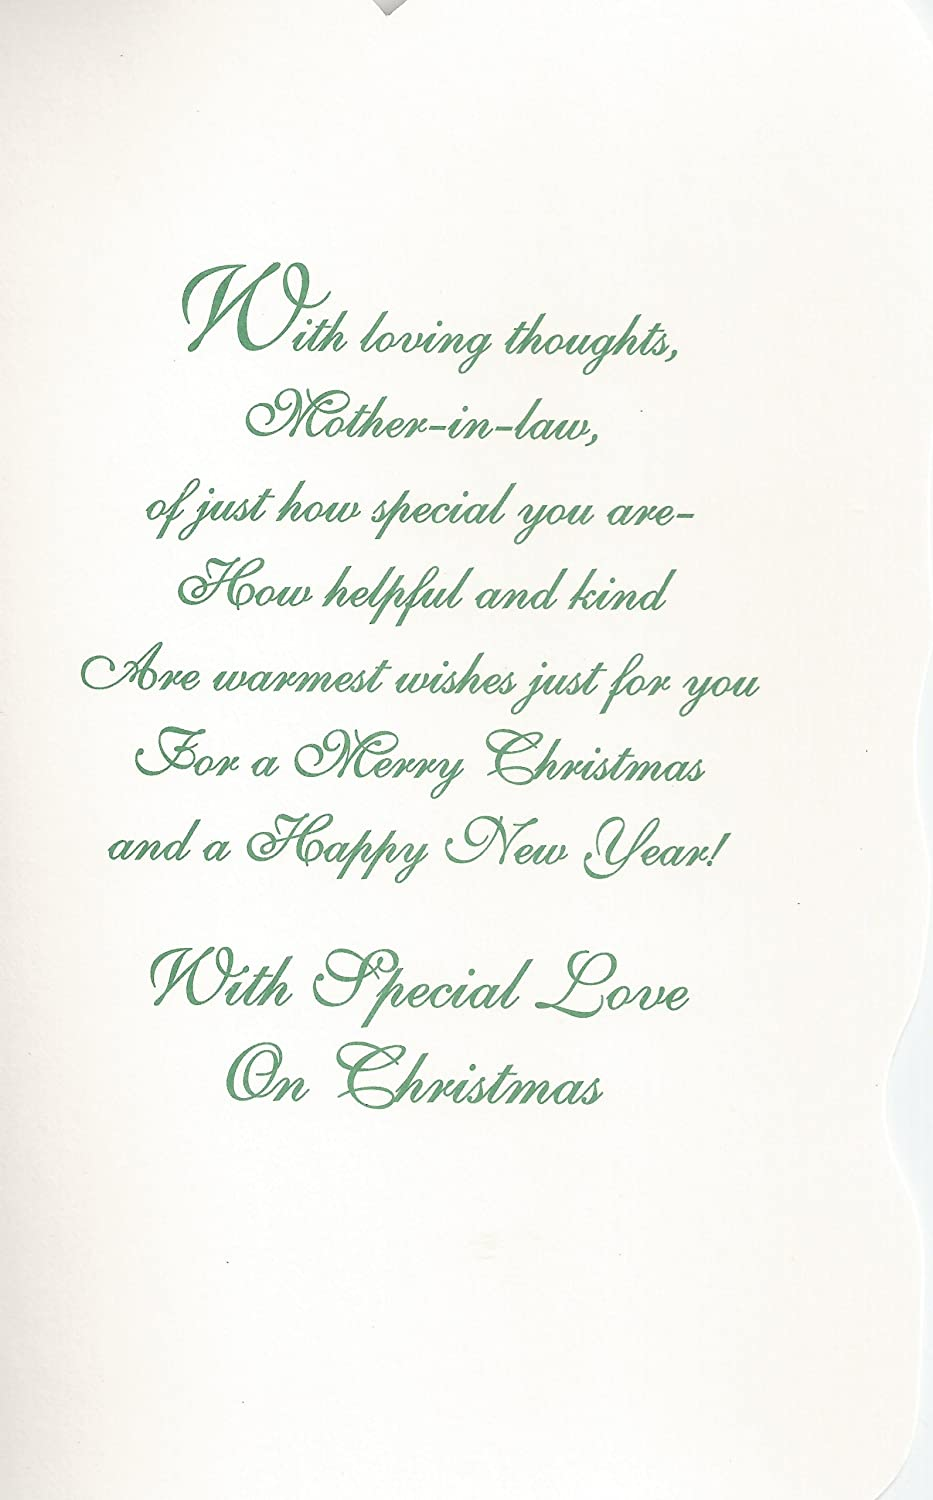 amazoncom mother in law you are special wishing you a merry christmas c20 stationery notepads office products